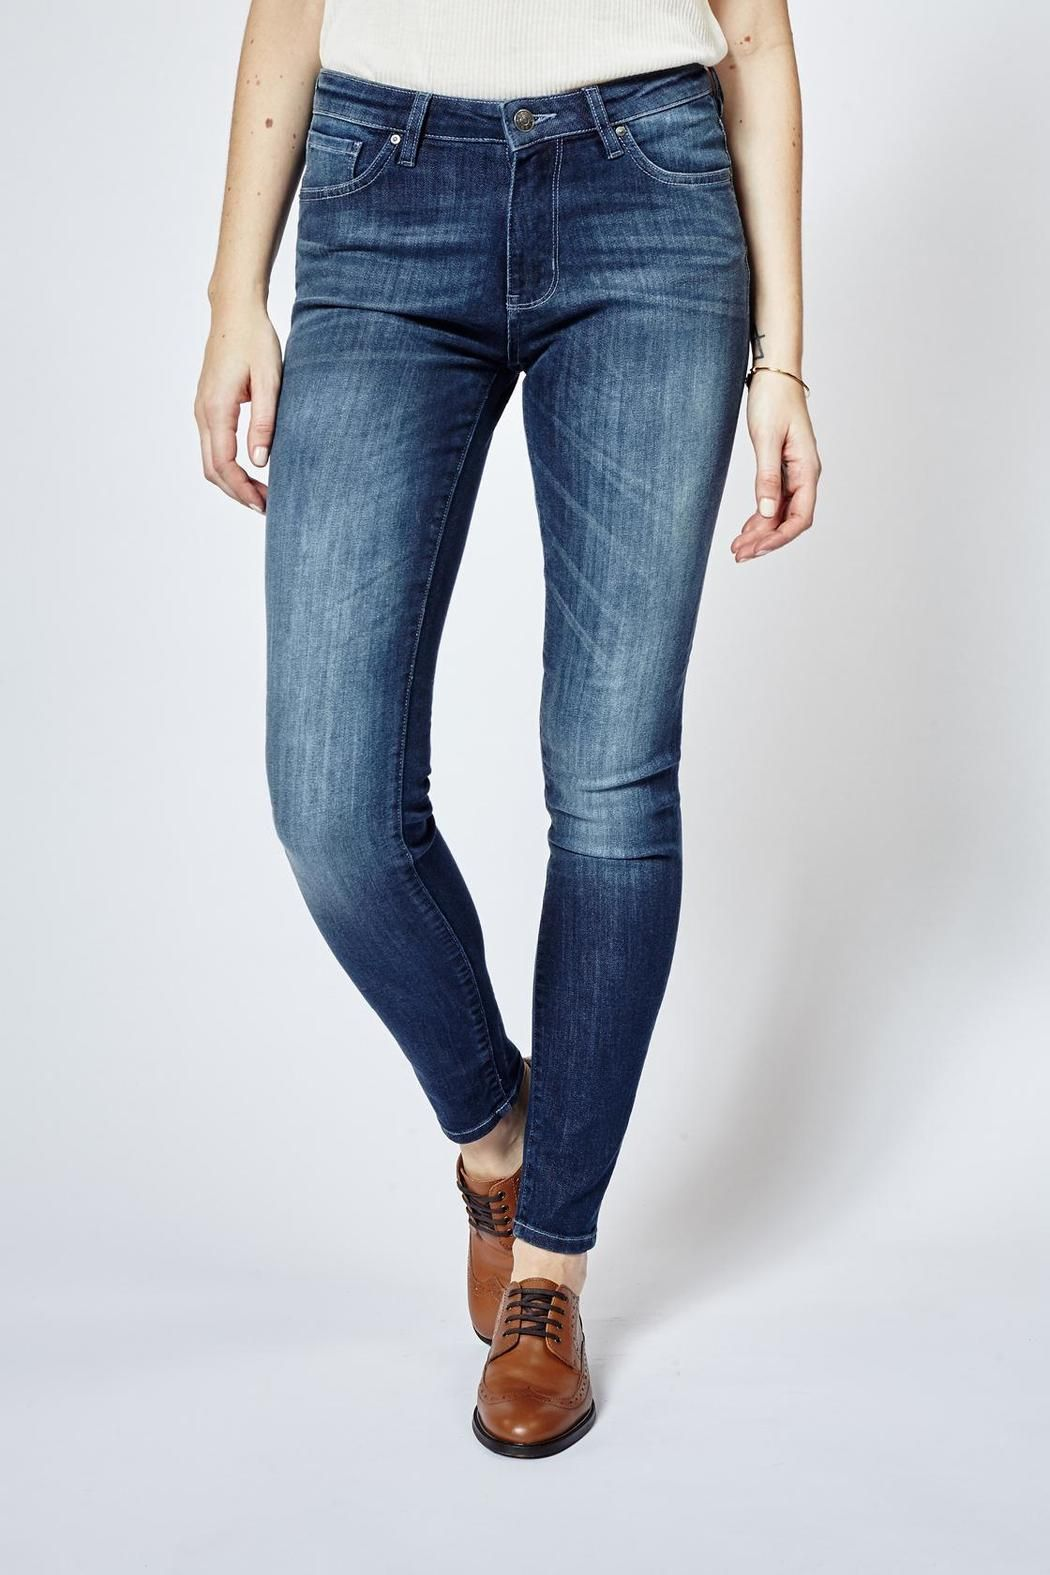 This denim stone features such as moisture wicking, temperature control and performance stretch allow for seamless transitions from life in the city to any outdoor excursions. Features include busted side seams, reinforced stress points and an articulated rise, all helping to provide ultimate comfort while on the move. Fit regular rise, slim through the hip and thigh, and fitted from the knee to leg opening. Integrating COOLMAX performance fibers into the denim allows moisture to be wicked…